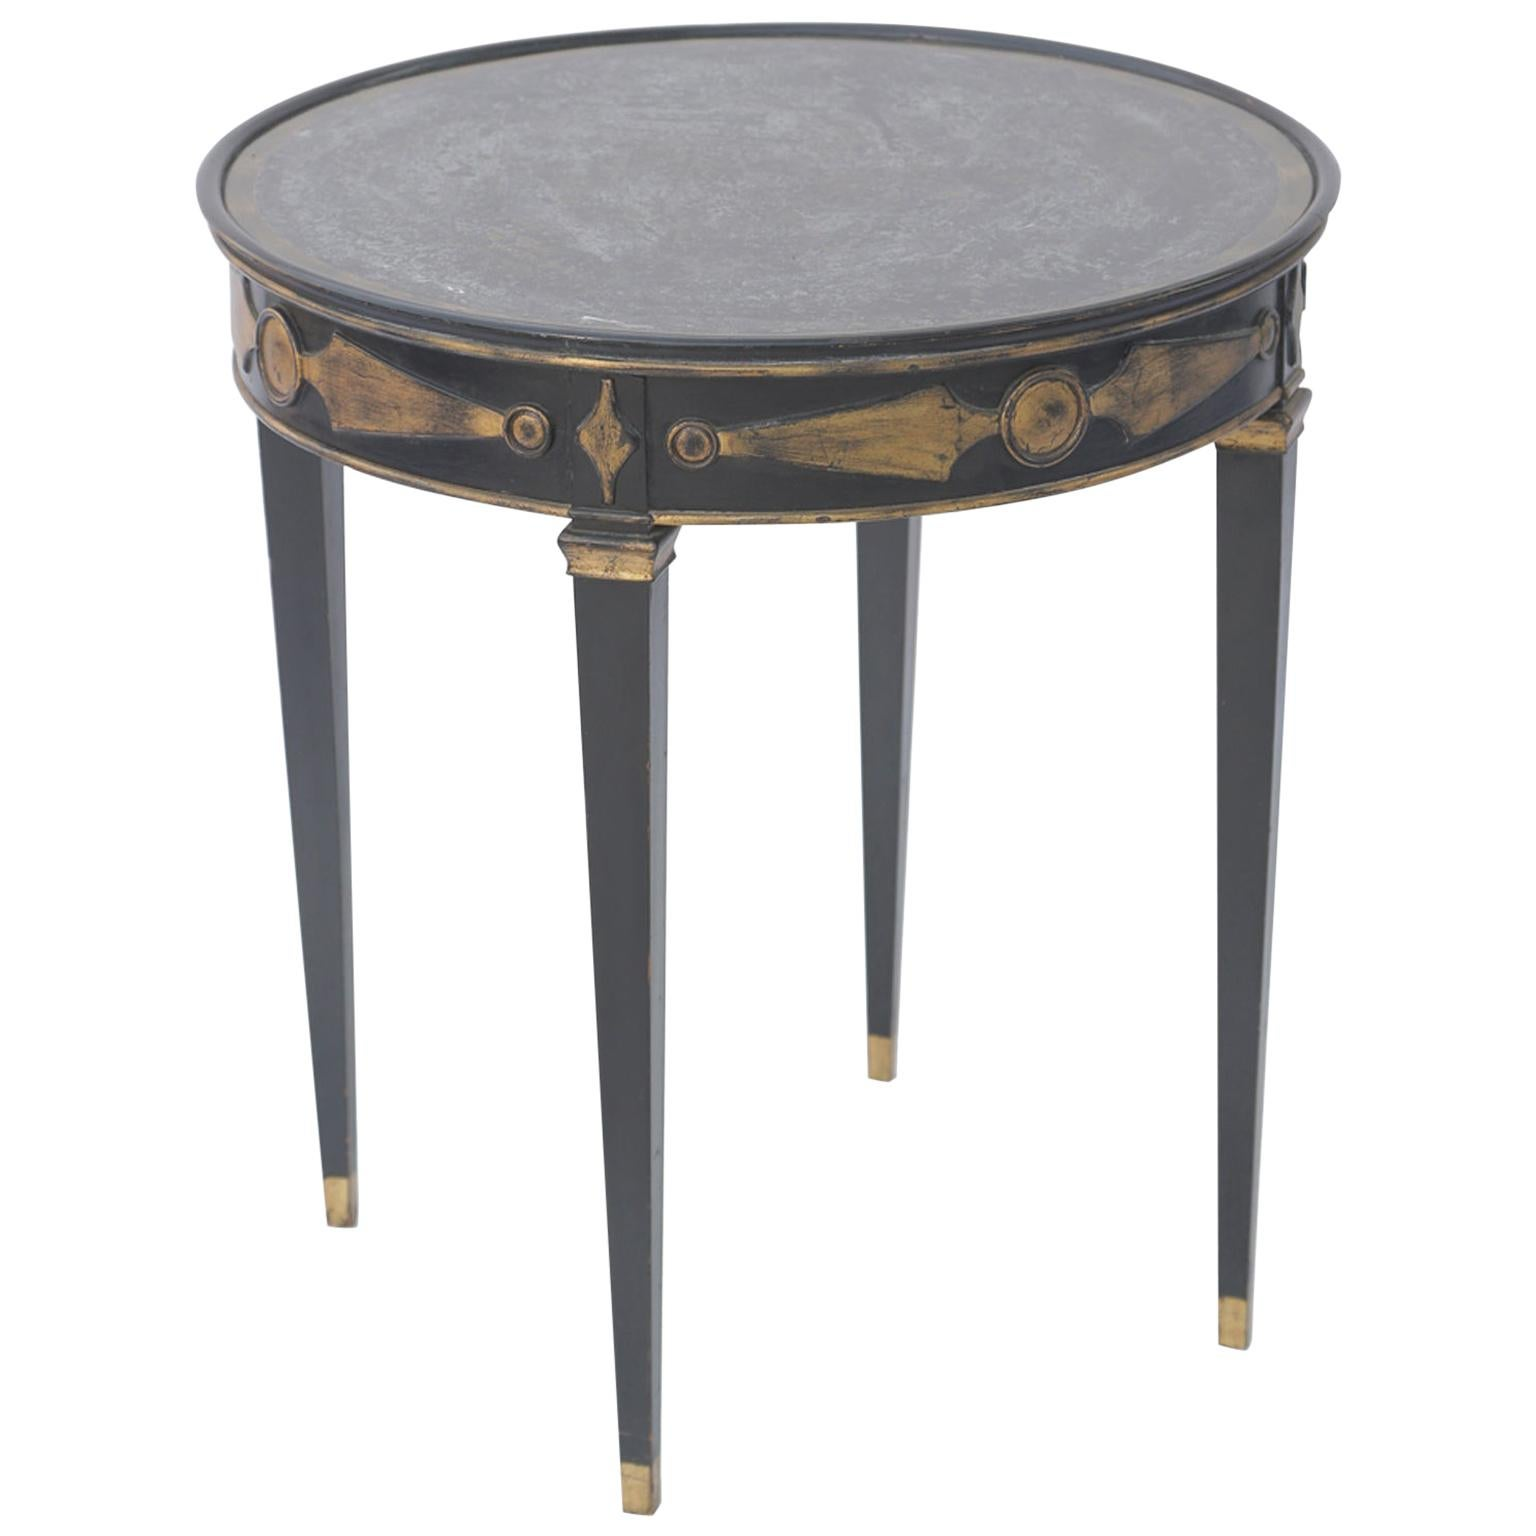 Directoire Style Occasional Table with Eglomise Top